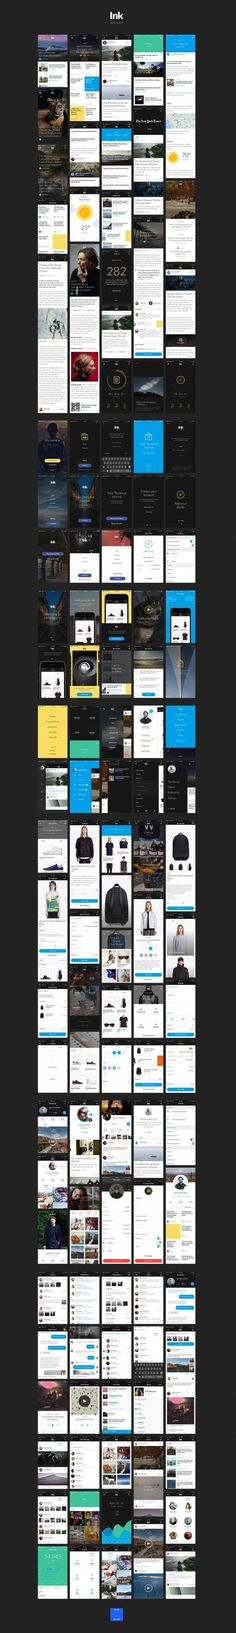 Ink UI Kit – 120+ iOS screens